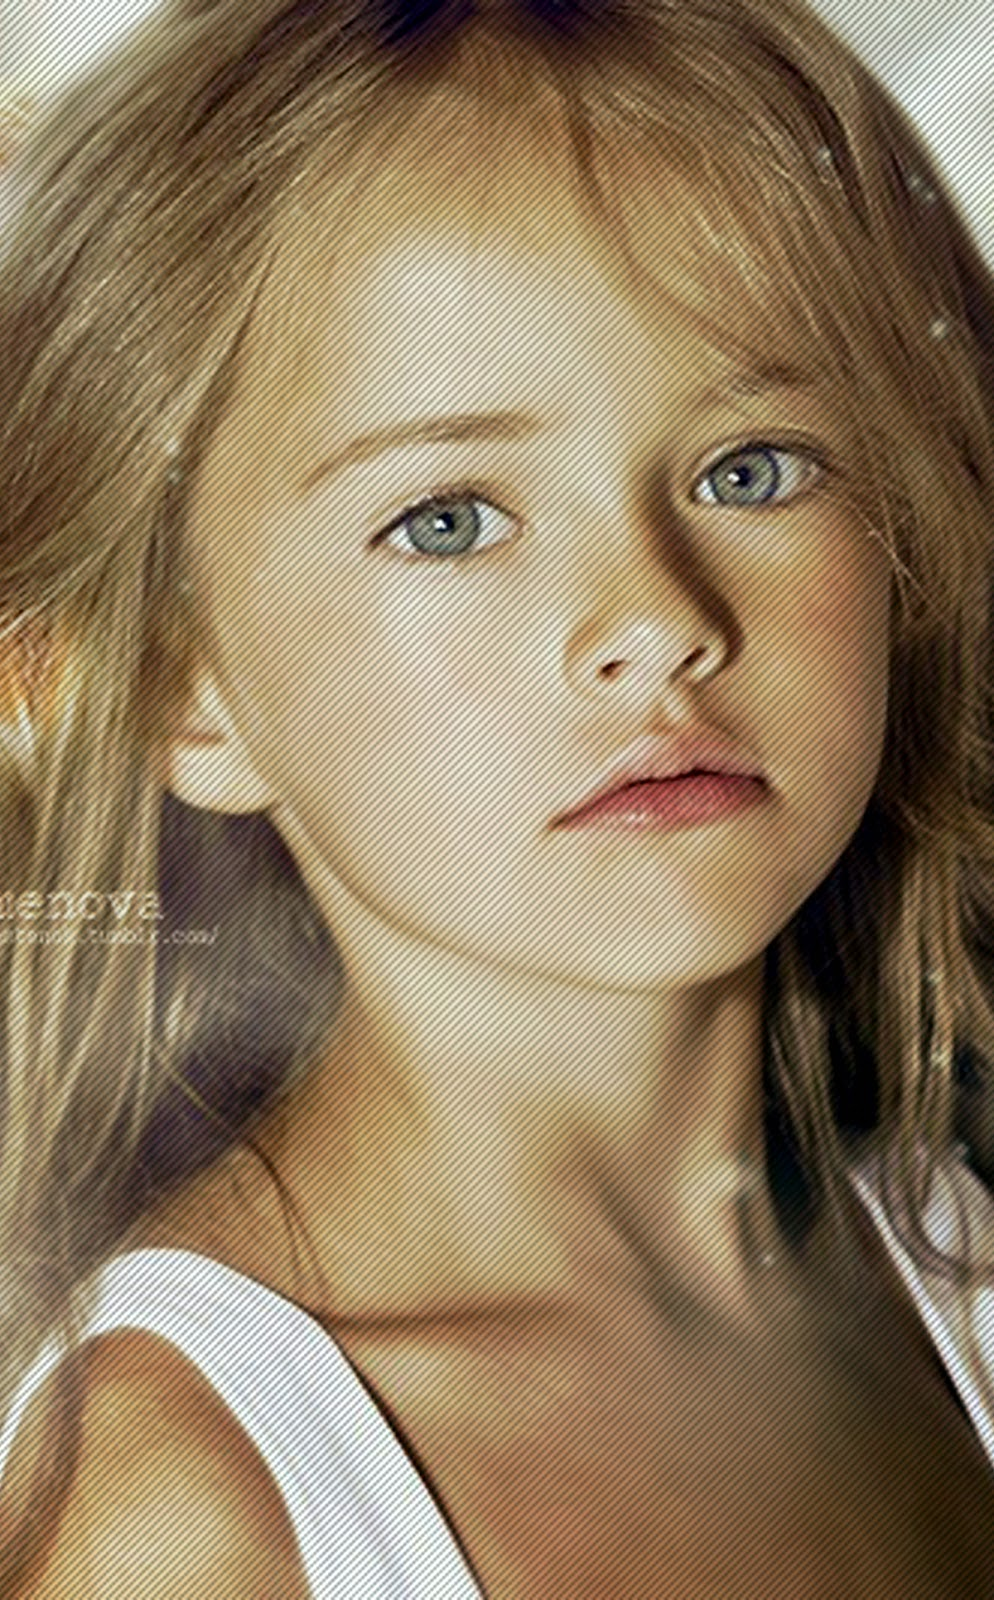 Kristina Pimenova (born December 27, 2005 in Moscow, Russia) is a talented Russian model and actress. She began modeling at the age of 3, doing catwalk and fashion shows. Kristina travels a lot & likes doing so. Her father is a football player and her mom is currently not working and spends most of her time with Kristina. She first got started in modelling when she was 3 years old, anywhere her mom would go, people would tell her how adorable Kristina was and tell her to try modelling. Her mom decided to try it out and Kristie soon realised how much fun it was, especially catwalk and fashion shows. She's been having a blast ever since and is still loving every minute of it! The most beautiful girl in the world – Kristina Pimenova The little and incredibly beautiful 6 years old Russian model Kristina Pimenova  has an angel face. She is from Moscow and has been modelling since the age of 4. Her mother has been working as a model as well and involved her daughter into the glamour world of fashion. With a stunning azure blue eyes and angelic appearance there is no doubt that many enchant all important and famous fashion names have remained enthralled by her beauty, so it's no wonder that Christina is already on the cover of the prestigious Vogue Bambini. She has already had fashion collaborations with the greatest designer brand like Roberto Cavalli and Benetton. This young model will be known in the world of fashion in the near future. #kristinapimenova #model #russia #fashion #angel #actress #beautiful #modeling #girl